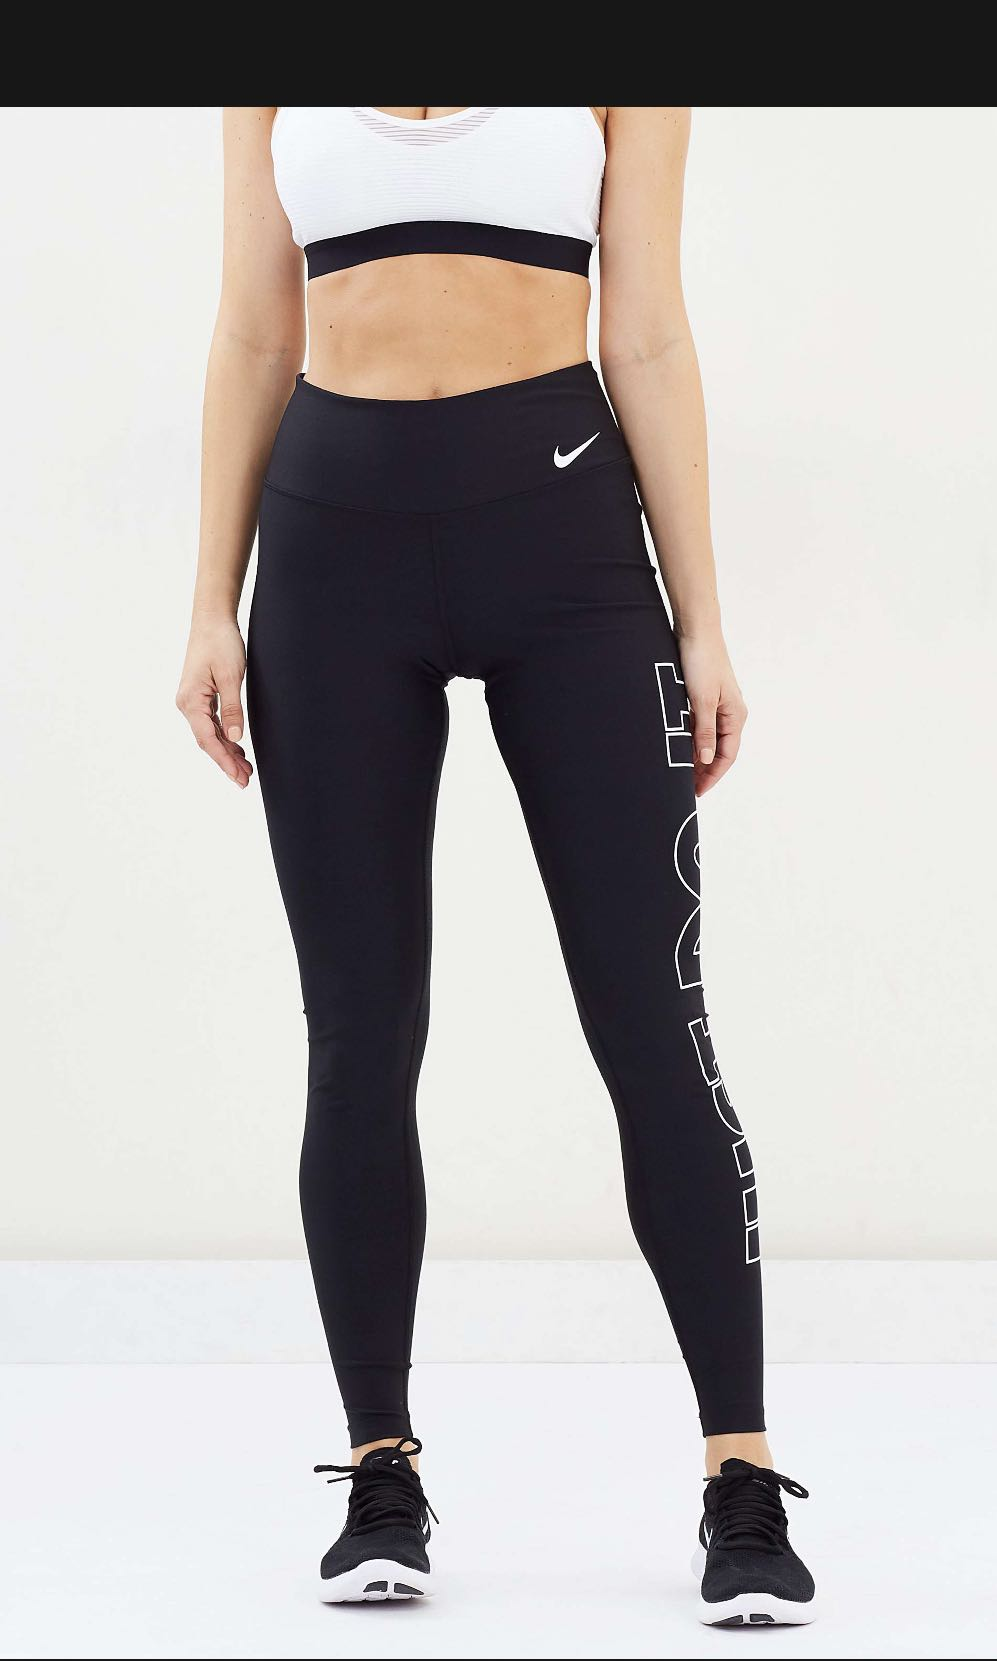 022d22cc9de4c Nike Power Poly Tights/Leggings, Women's Fashion, Clothes on Carousell